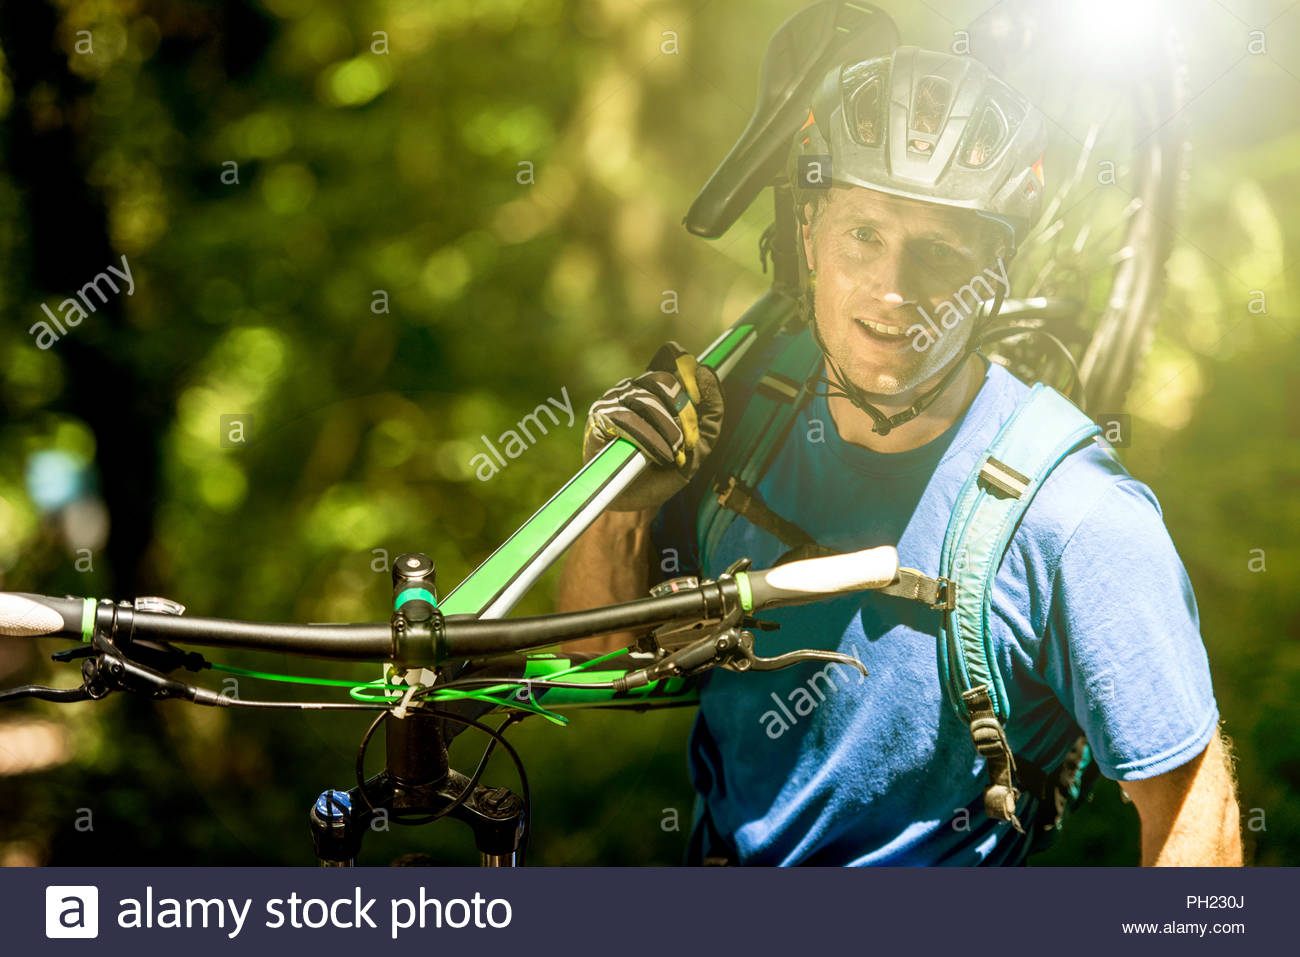 Man carrying mountain bike in forest - Stock Image